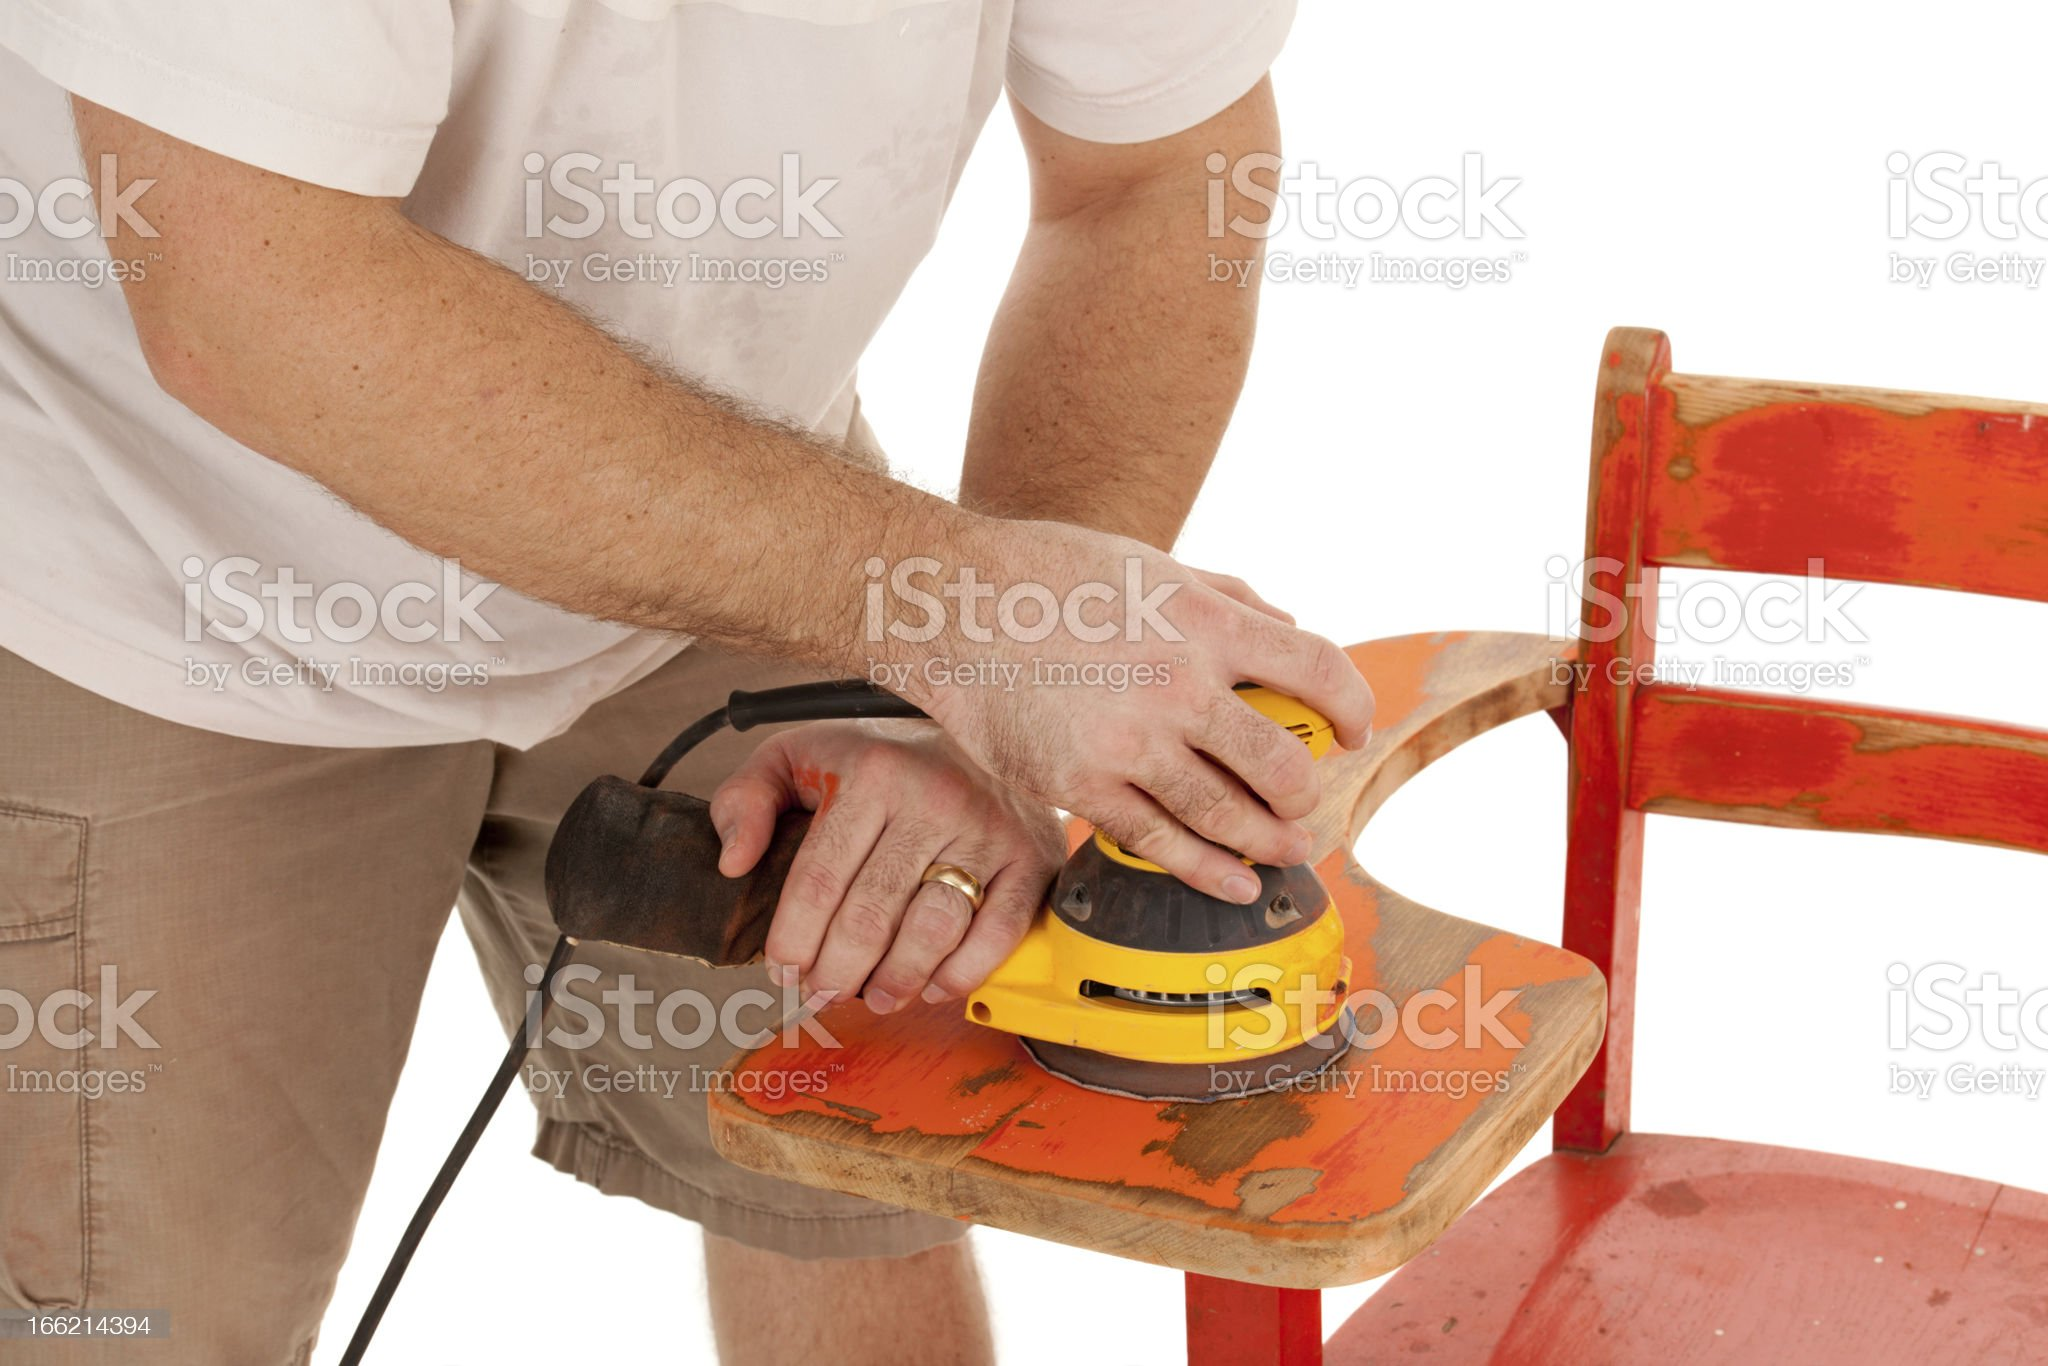 Orbital Sander to Restore Old School Desk (Close-up, Restoration Series) royalty-free stock photo